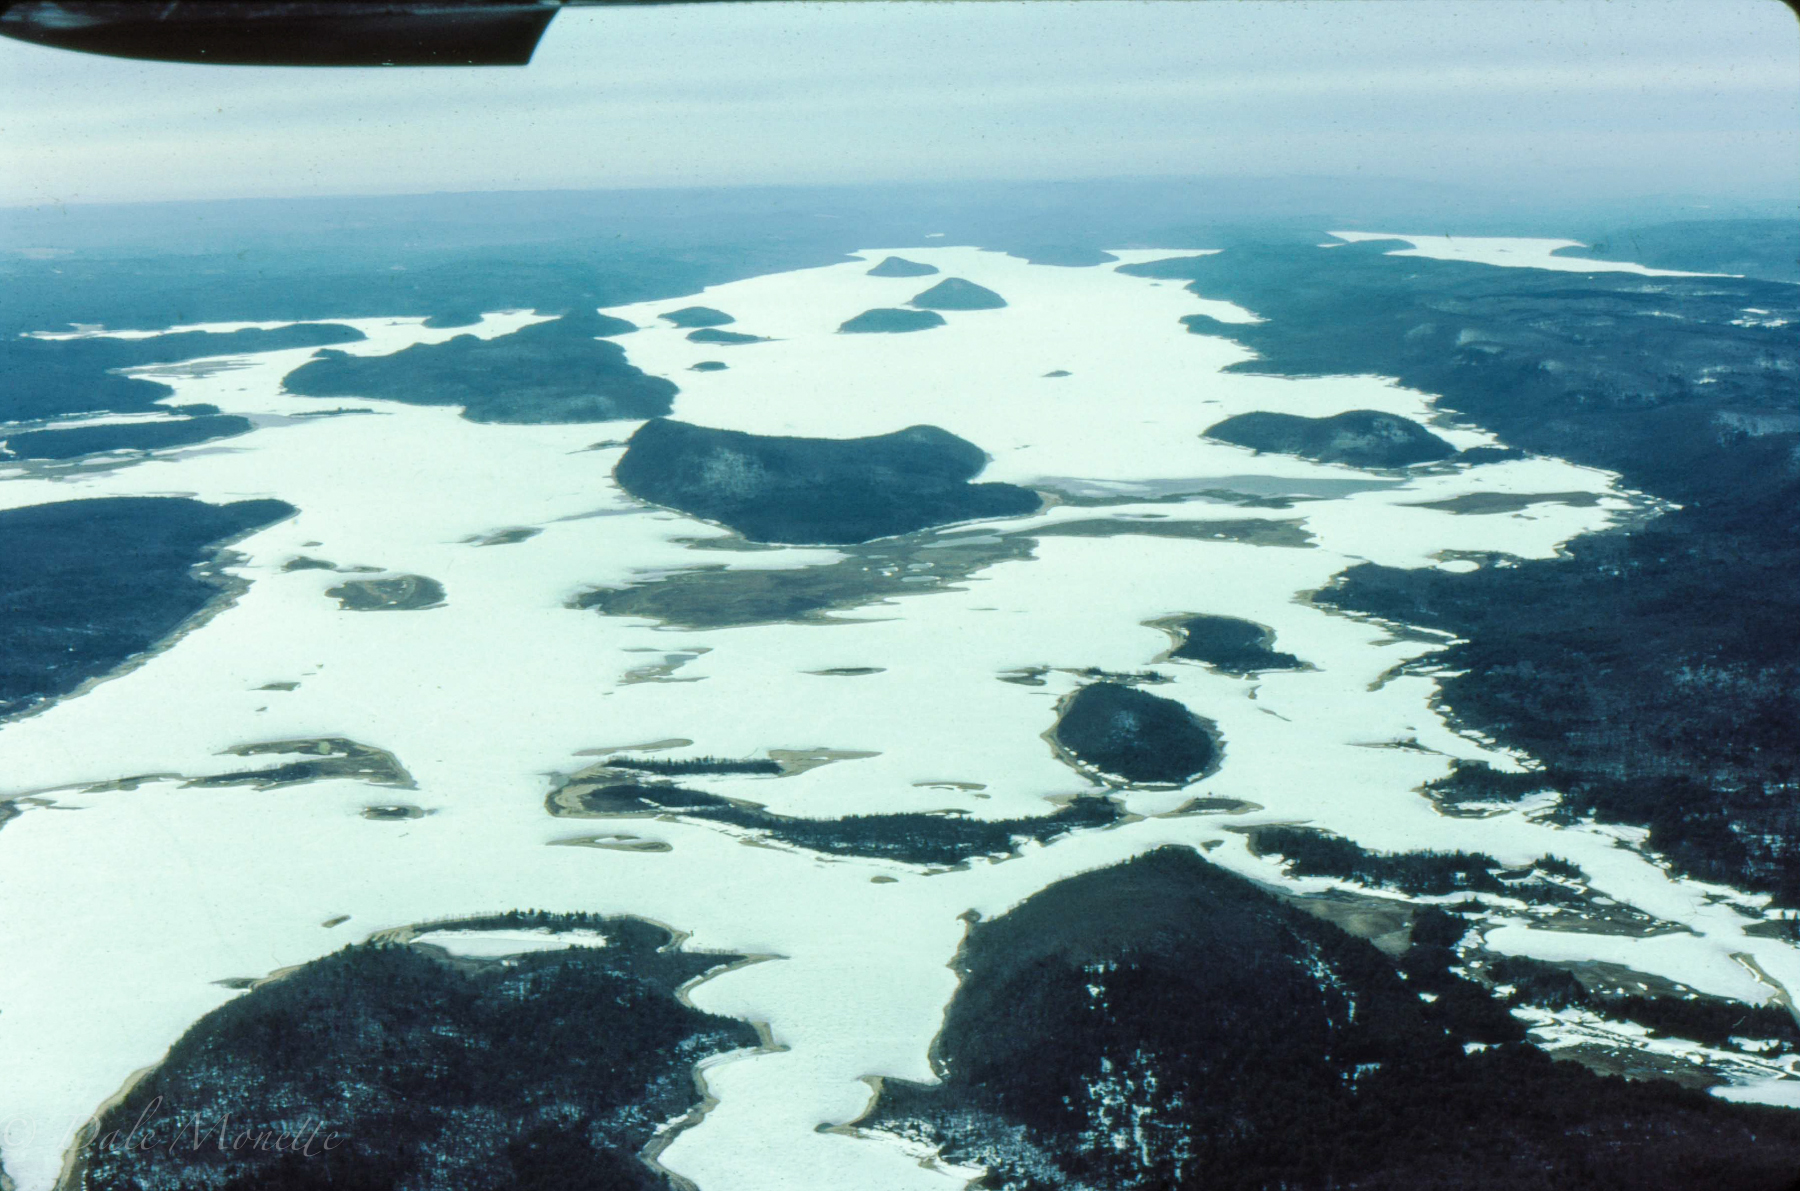 Flying over north Quabbin looking south. Mount L is right in the middle taken in 1985.